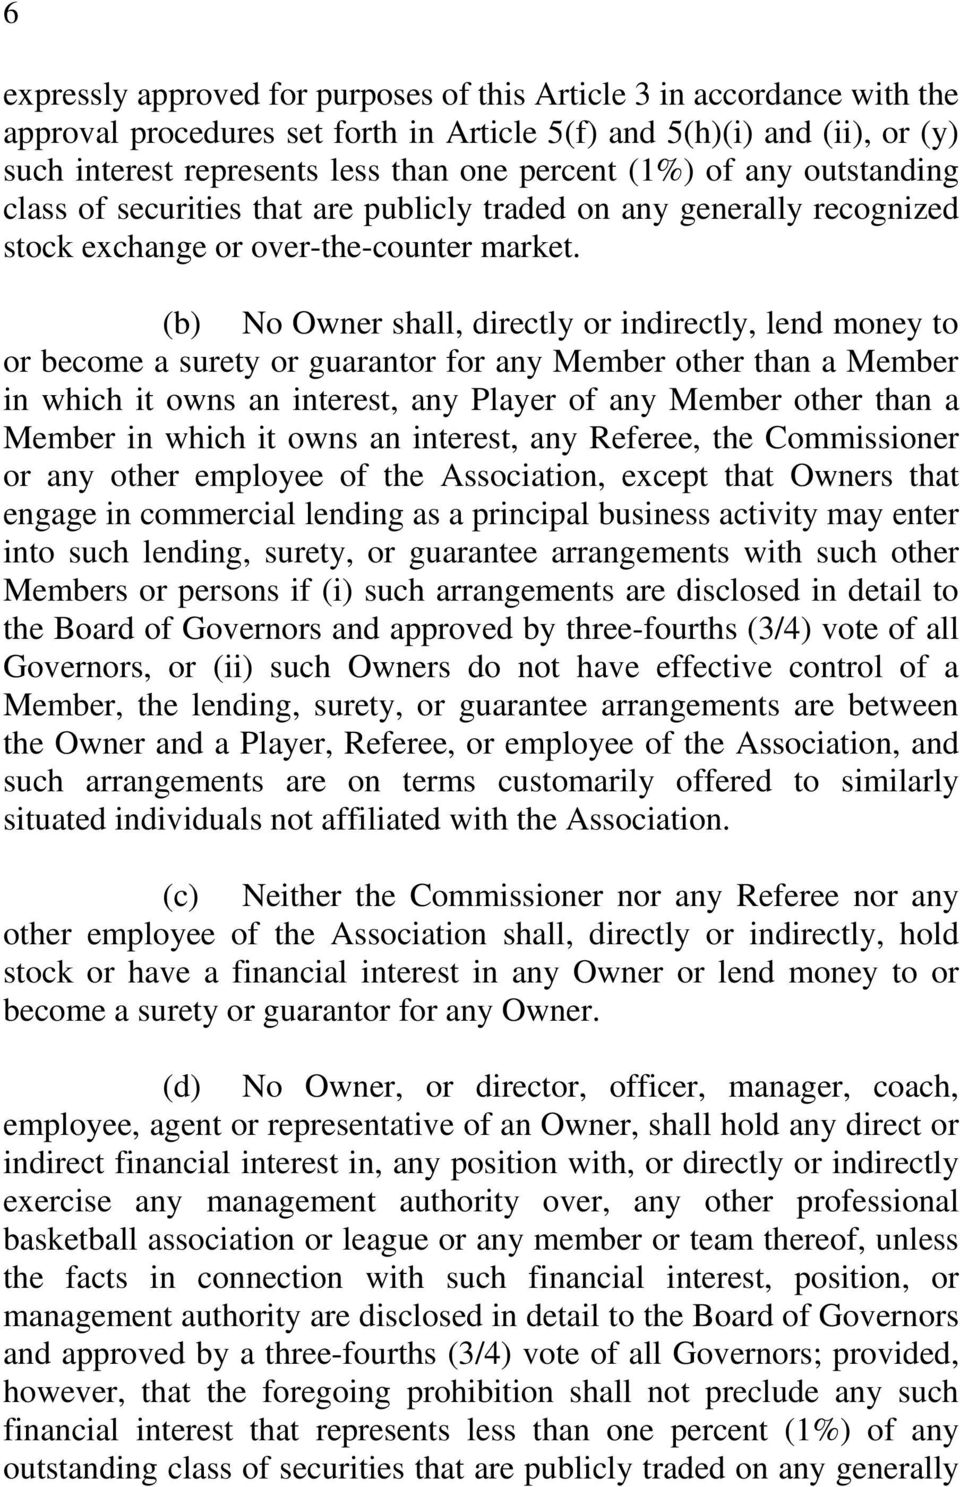 (b) No Owner shall, directly or indirectly, lend money to or become a surety or guarantor for any Member other than a Member in which it owns an interest, any Player of any Member other than a Member